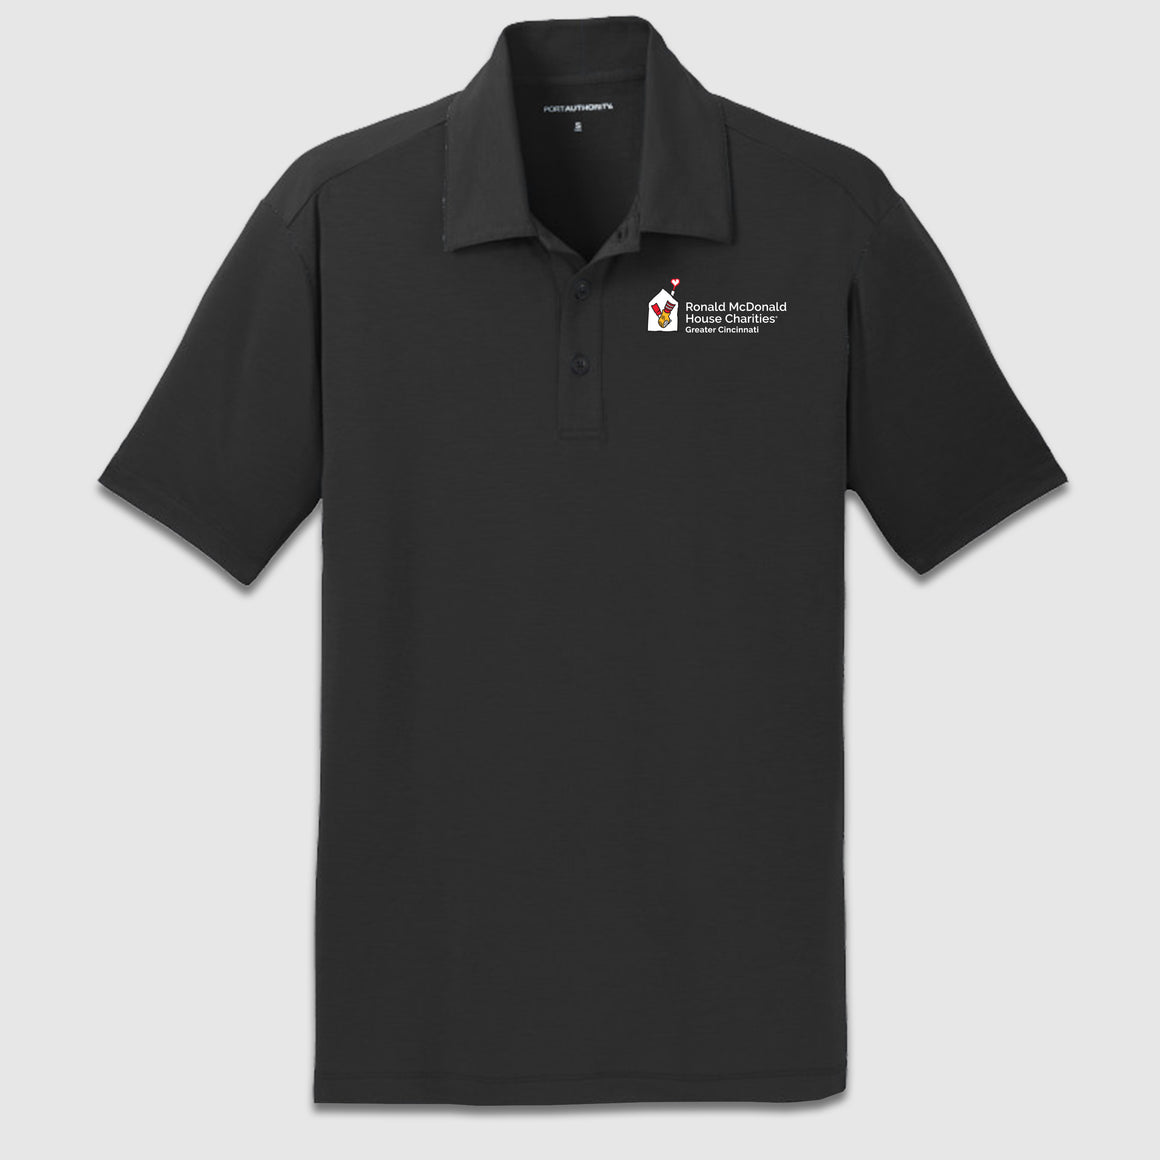 Port Authority Cotton Touch Performance Polo Ronald McDonald House Charity Chest Logo - Cincy Shirts